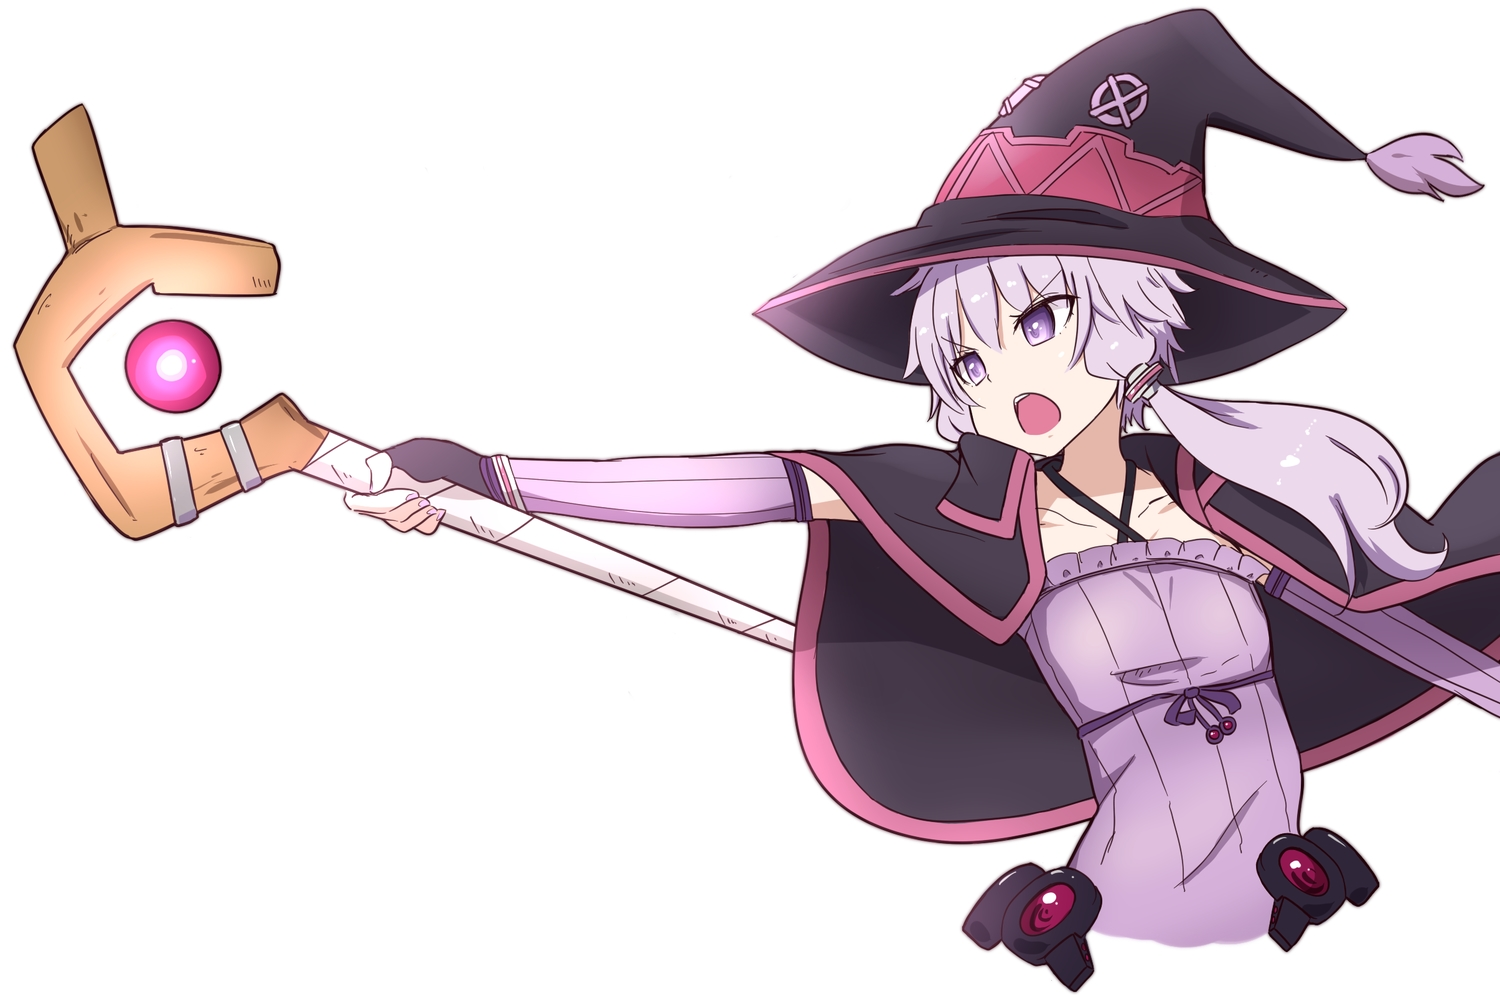 cape cosplay flat_chest gloves hat kakihitoshirazu kono_subarashii_sekai_ni_shukufuku_wo! long_hair mage purple_eyes purple_hair staff vocaloid voiceroid white witch_hat yuzuki_yukari